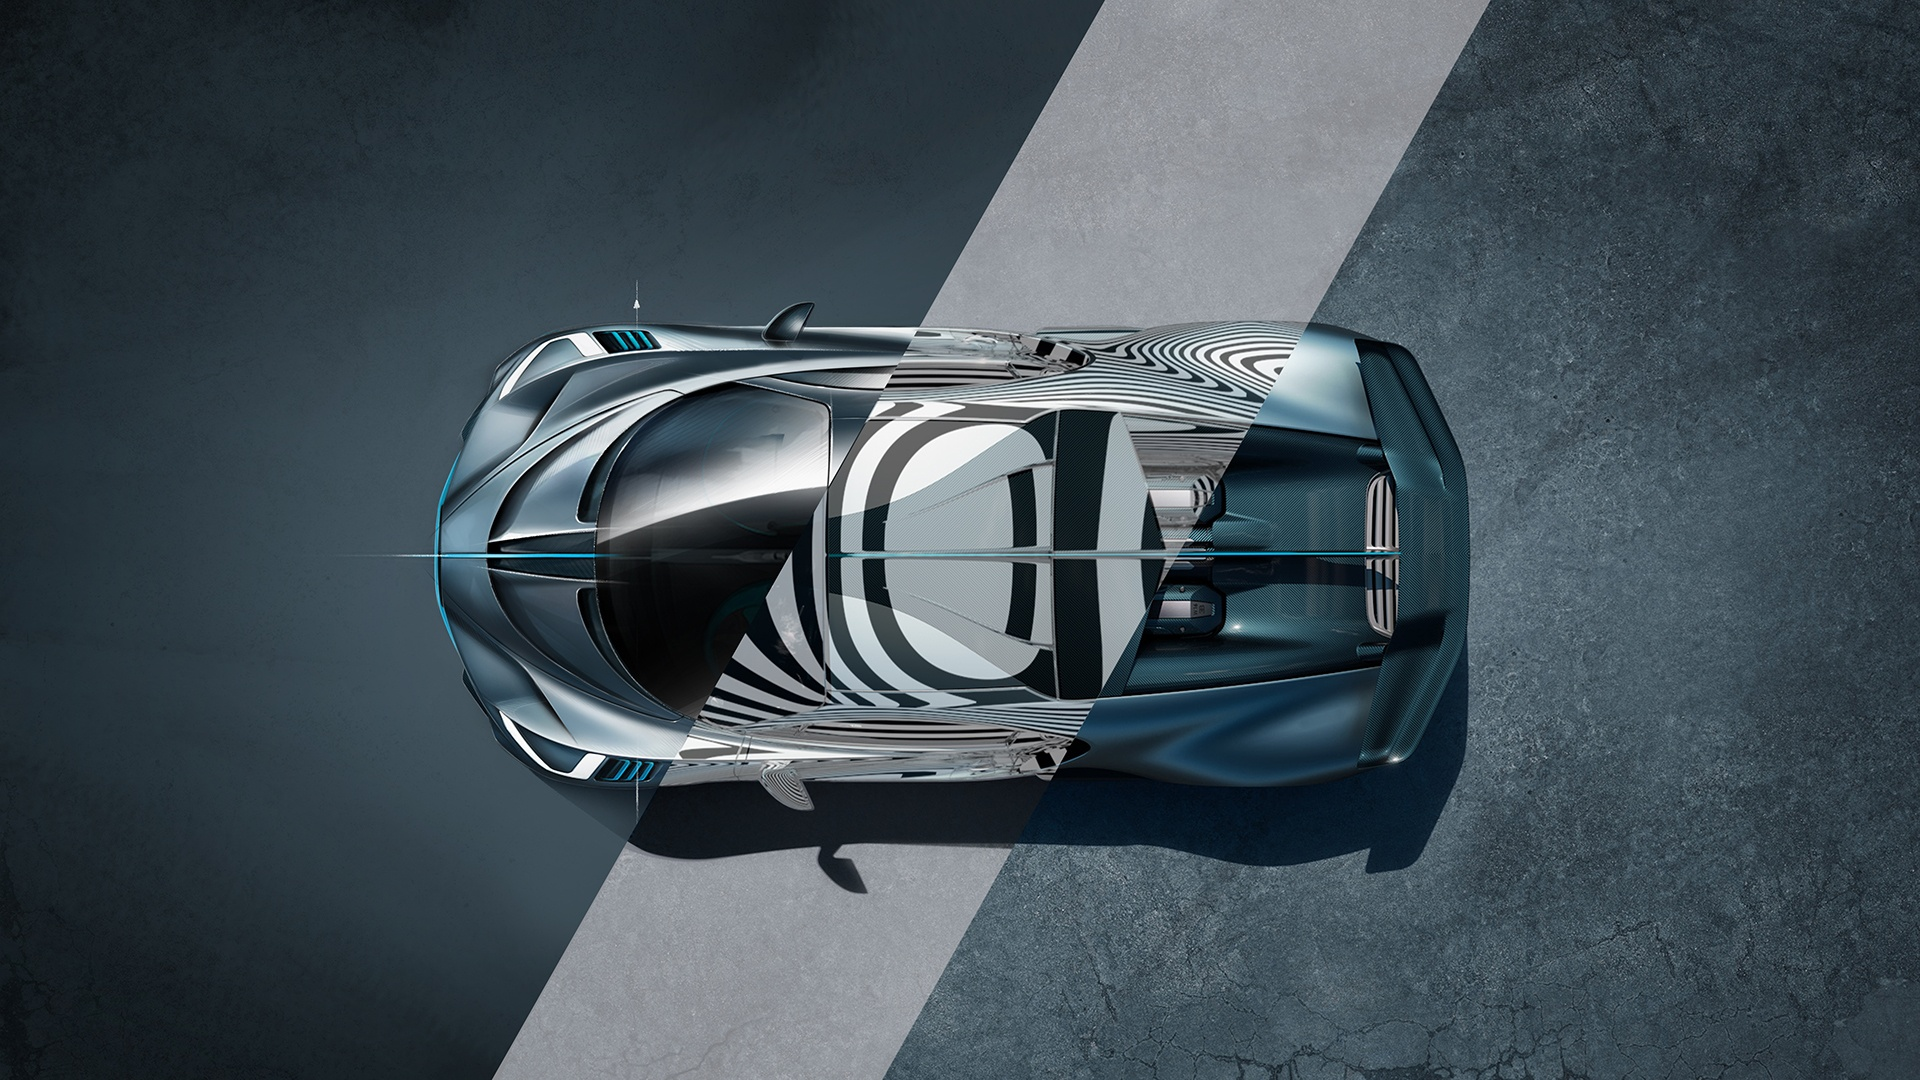 Bugatti pioneer in digitalization of the design process